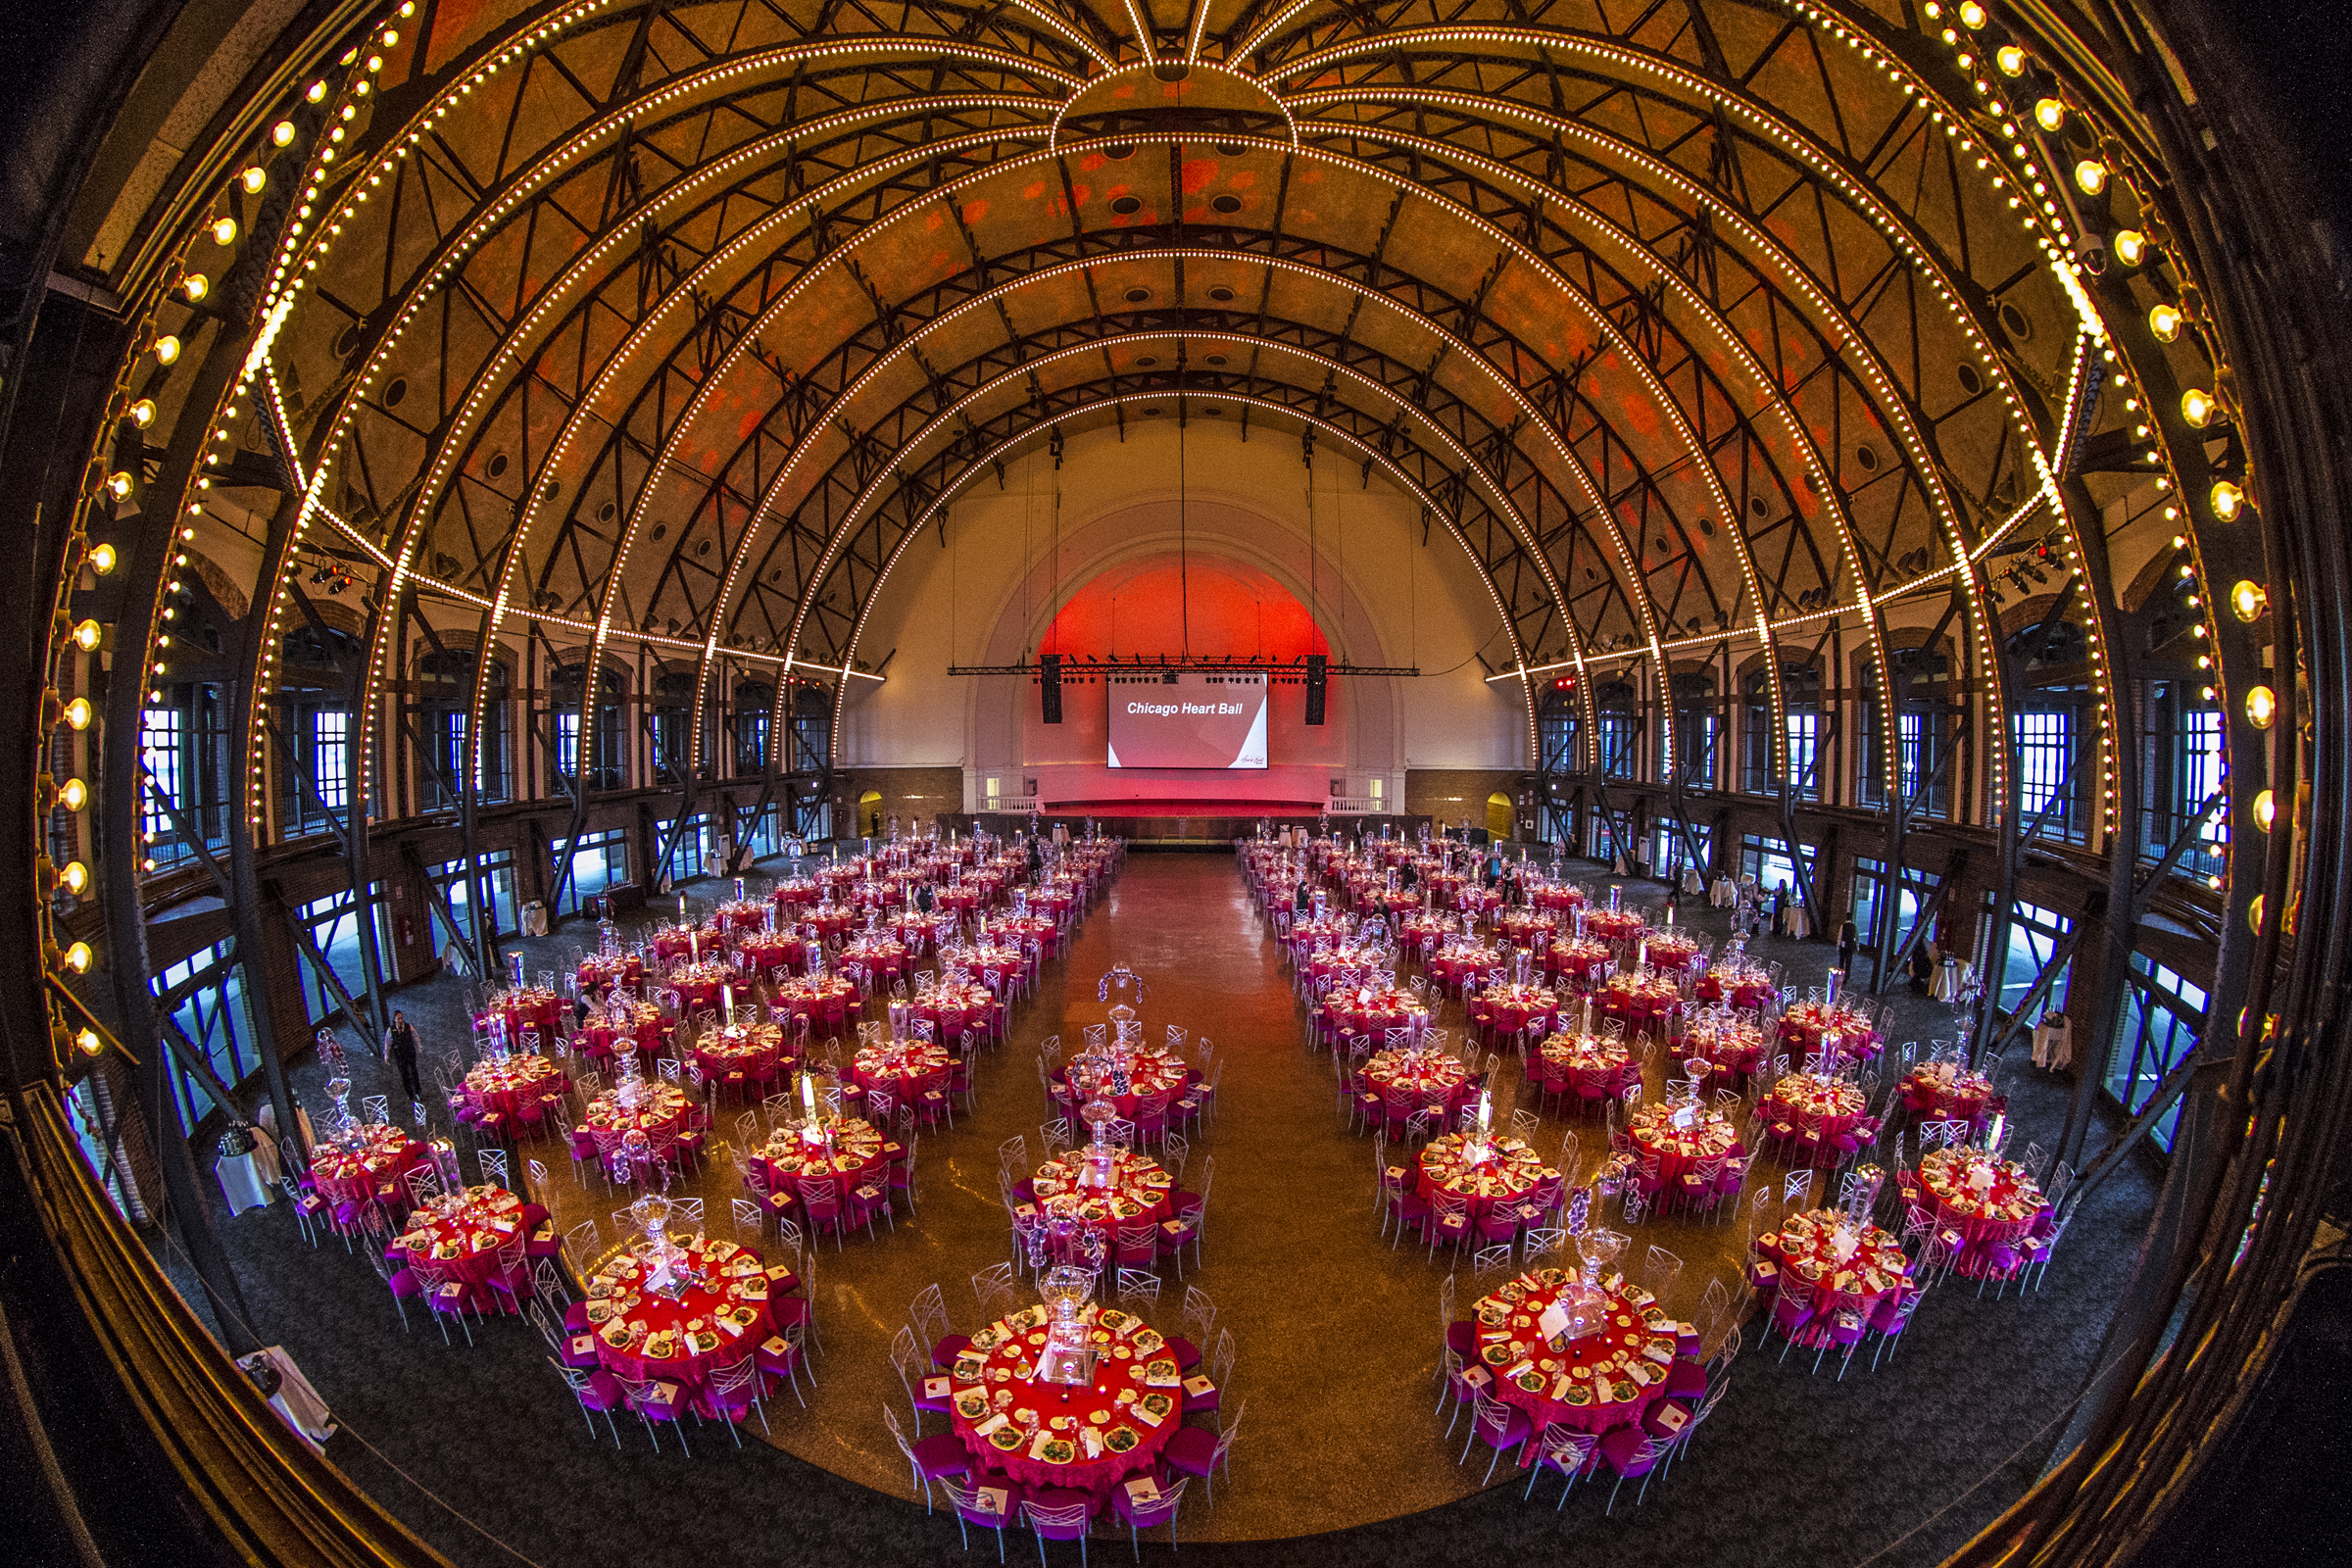 Chicago Heart Ball 2016 - Kehoe Designs